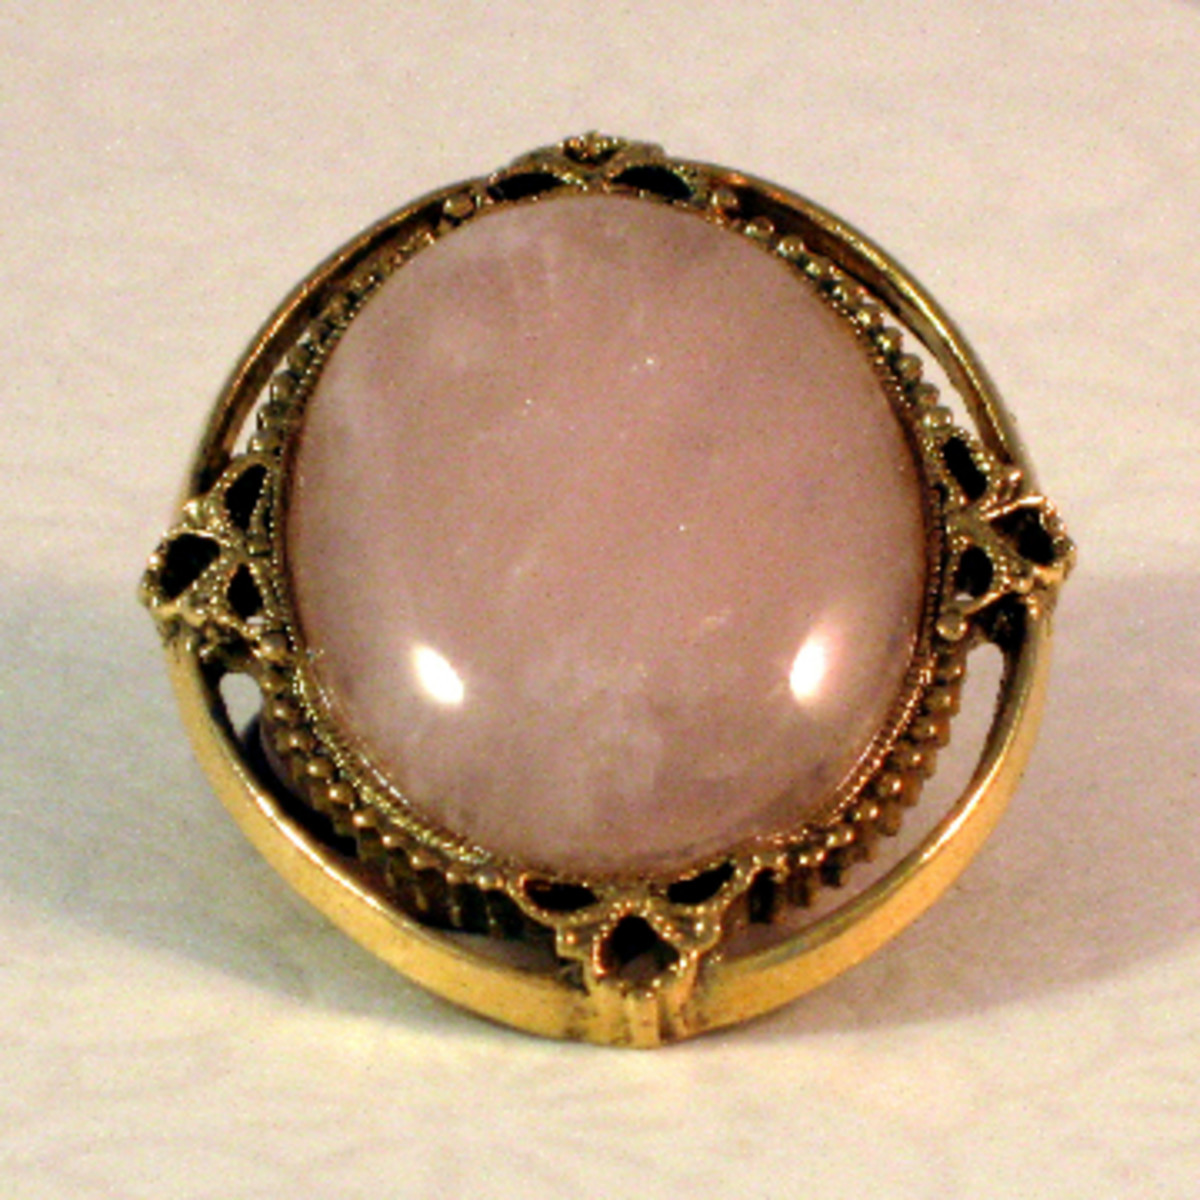 Meh.  A perfectly nice but hardly spectacular rose quartz pendant.